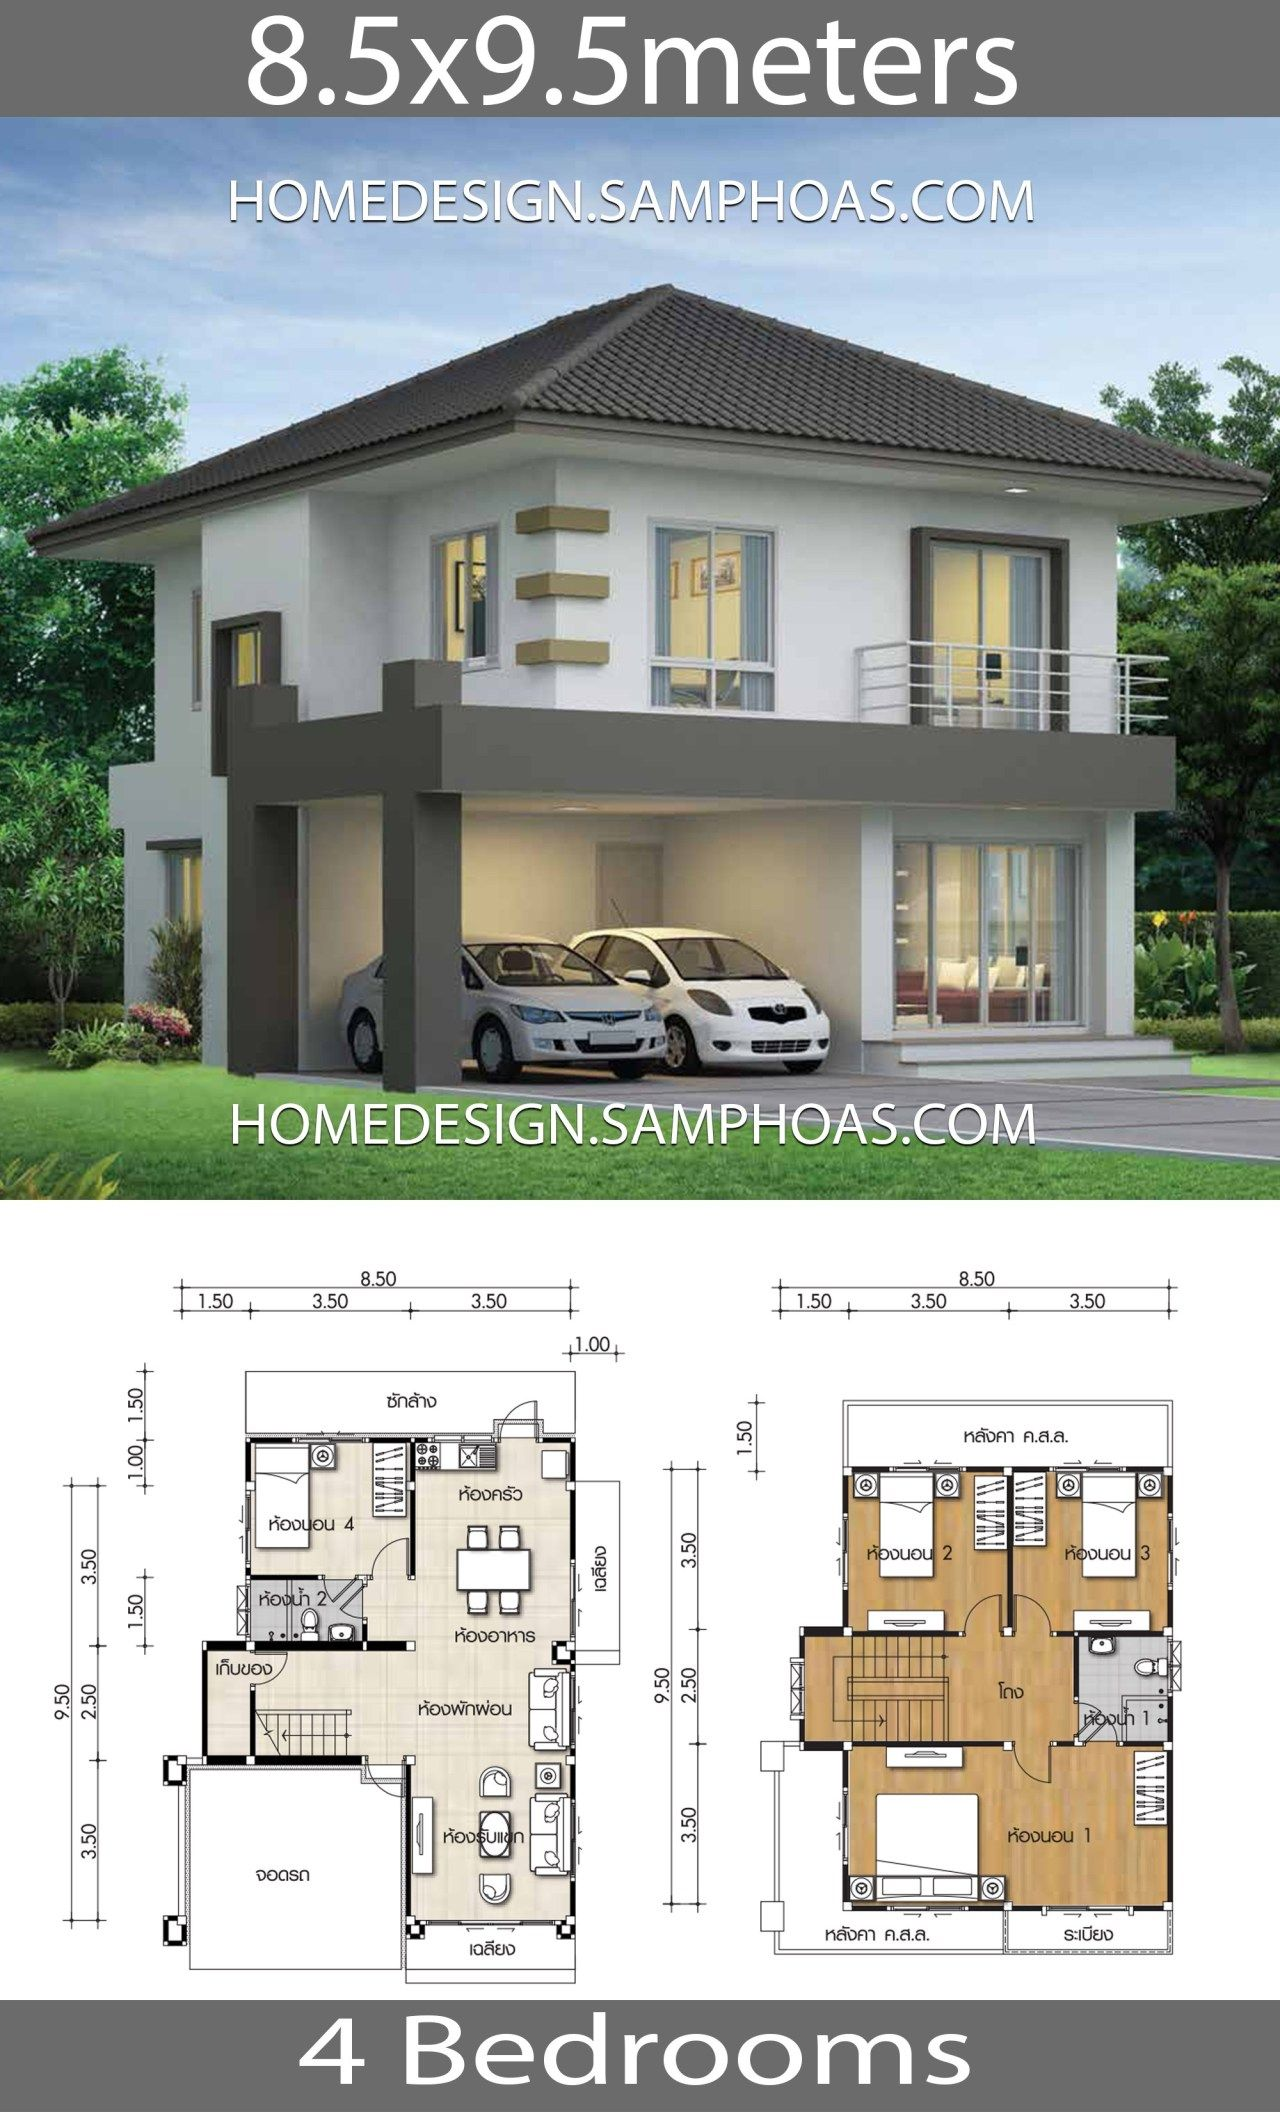 House Design Plans 8 5x9 5m With 4 Bedrooms Home Ideas Two Storey House Plans Duplex House Design House Construction Plan